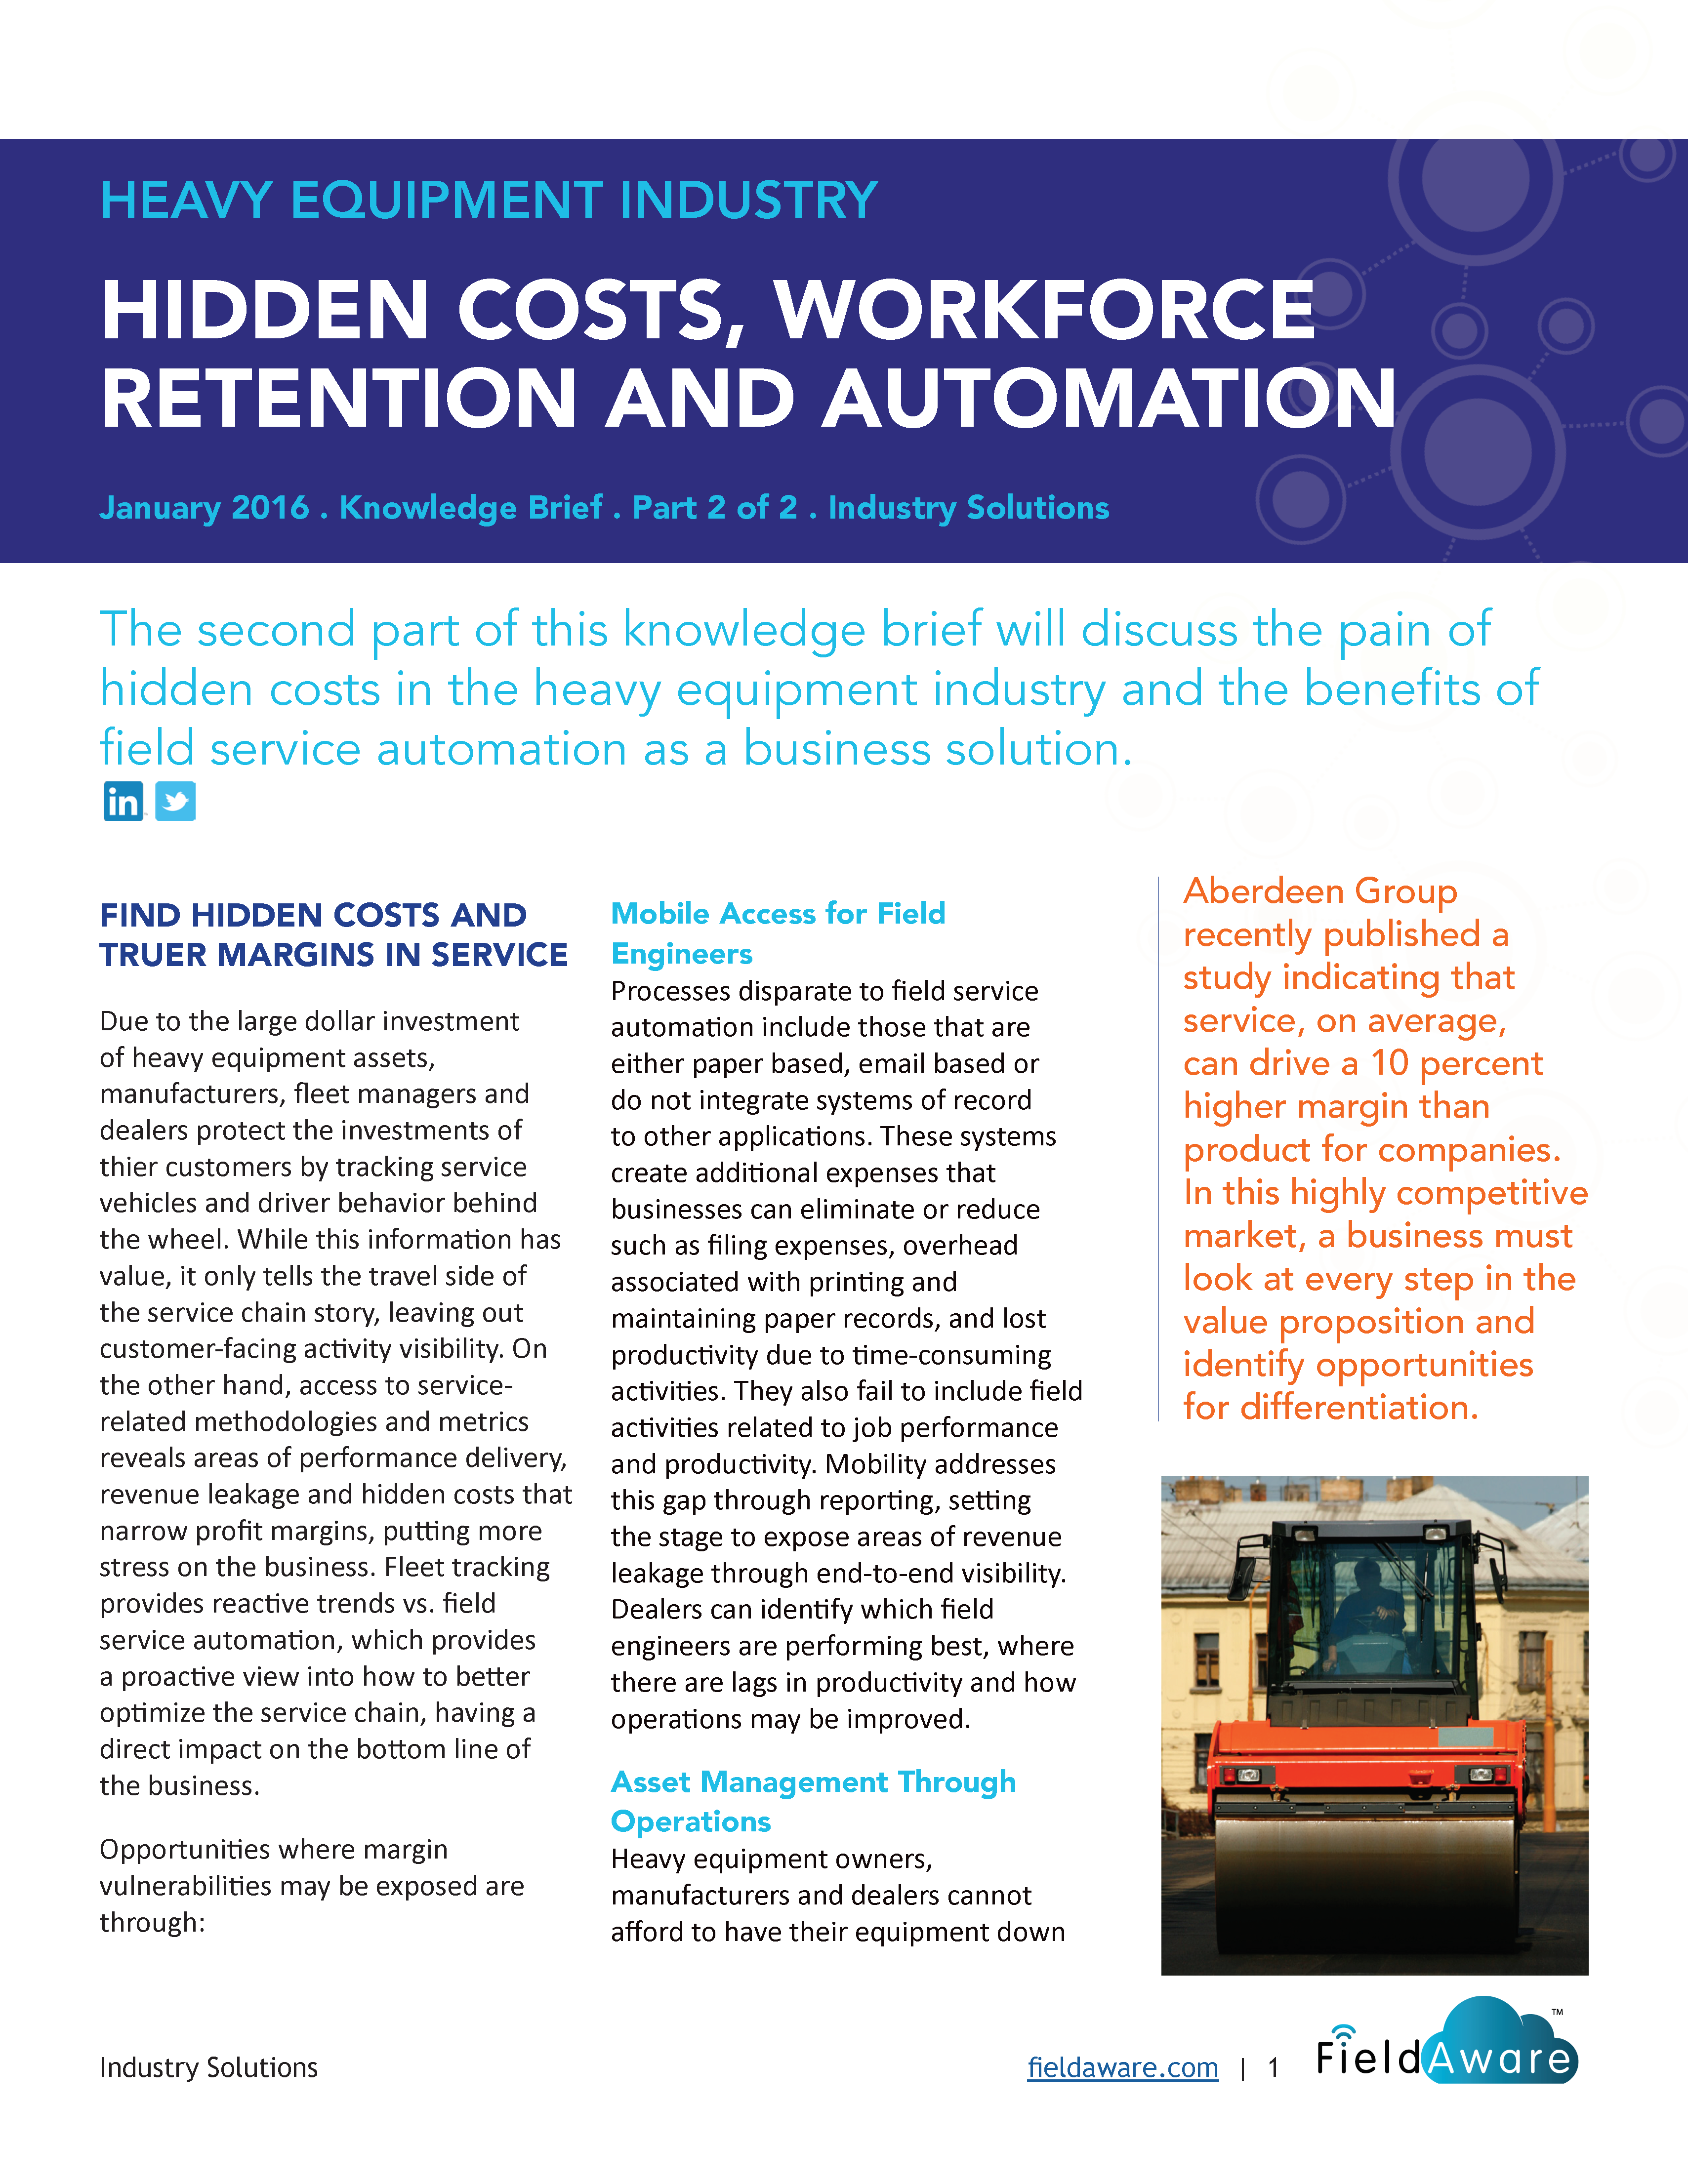 Heavy Equipment Industry Hidden Costs, Workforce Retention And Automation - Part 2 White Paper